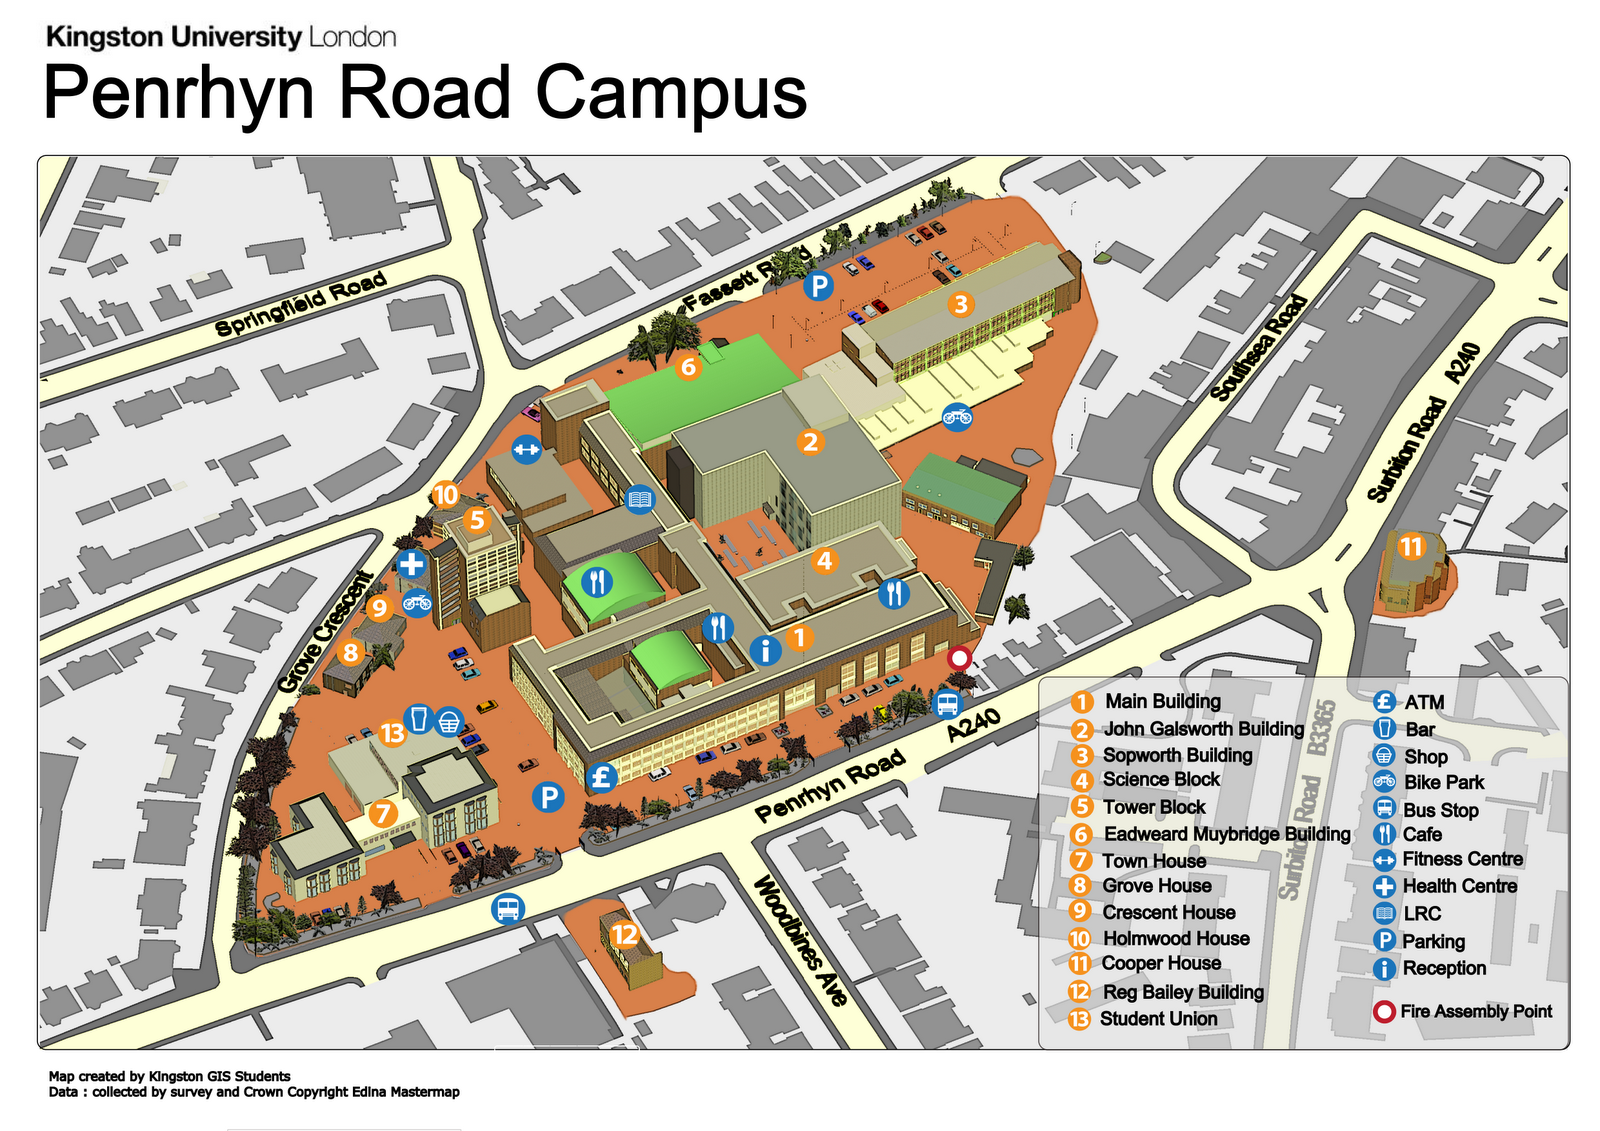 Kingston University Campus Map Pin by Jonathan Goodwin on Campus Maps   Campus map, Map, Games